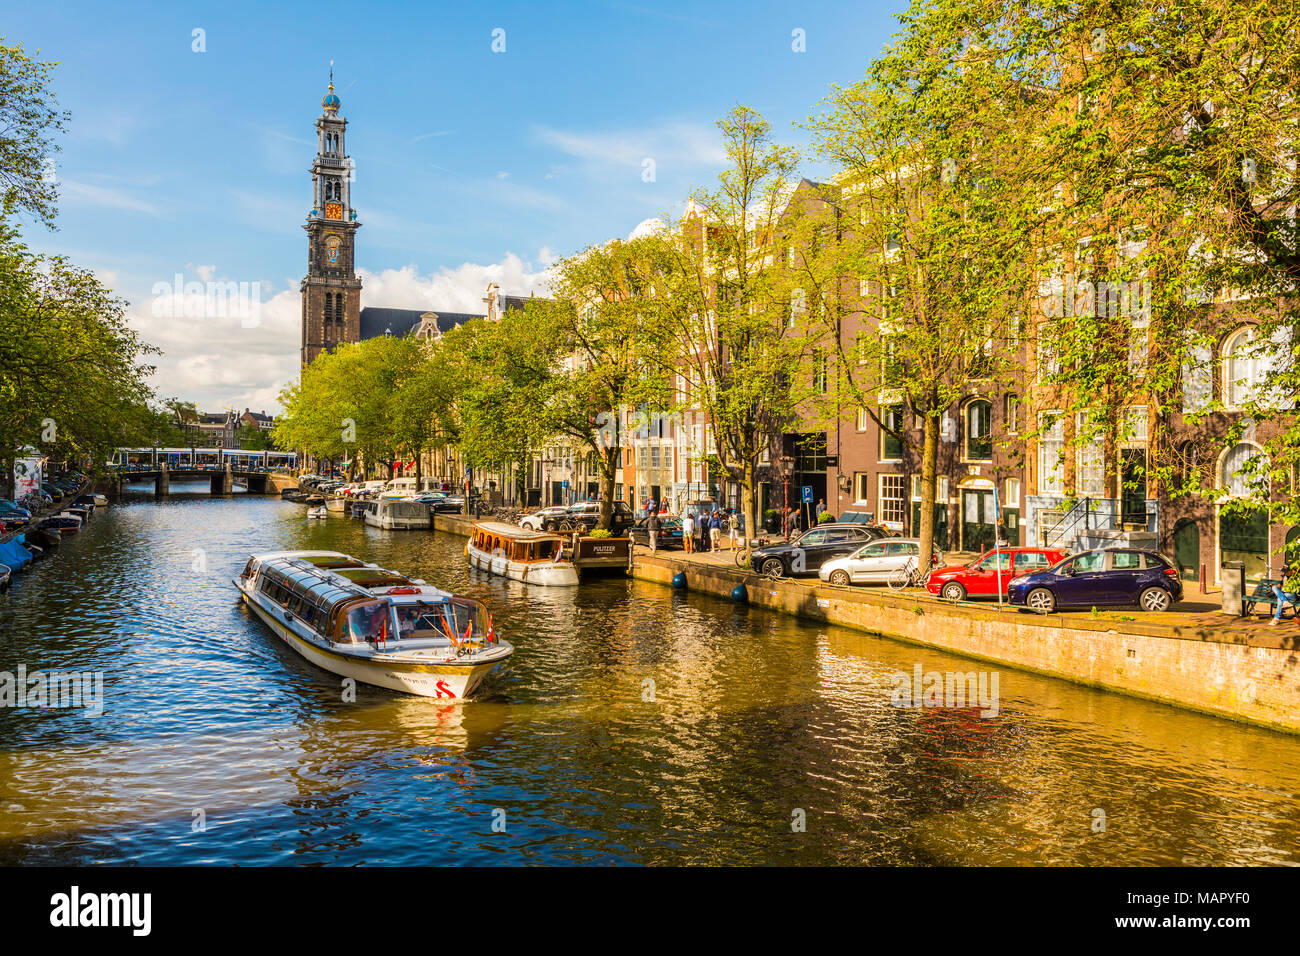 Boat on Prinsengracht Canal, with Westerkerk in the background, Amsterdam, Netherlands, Europe - Stock Image